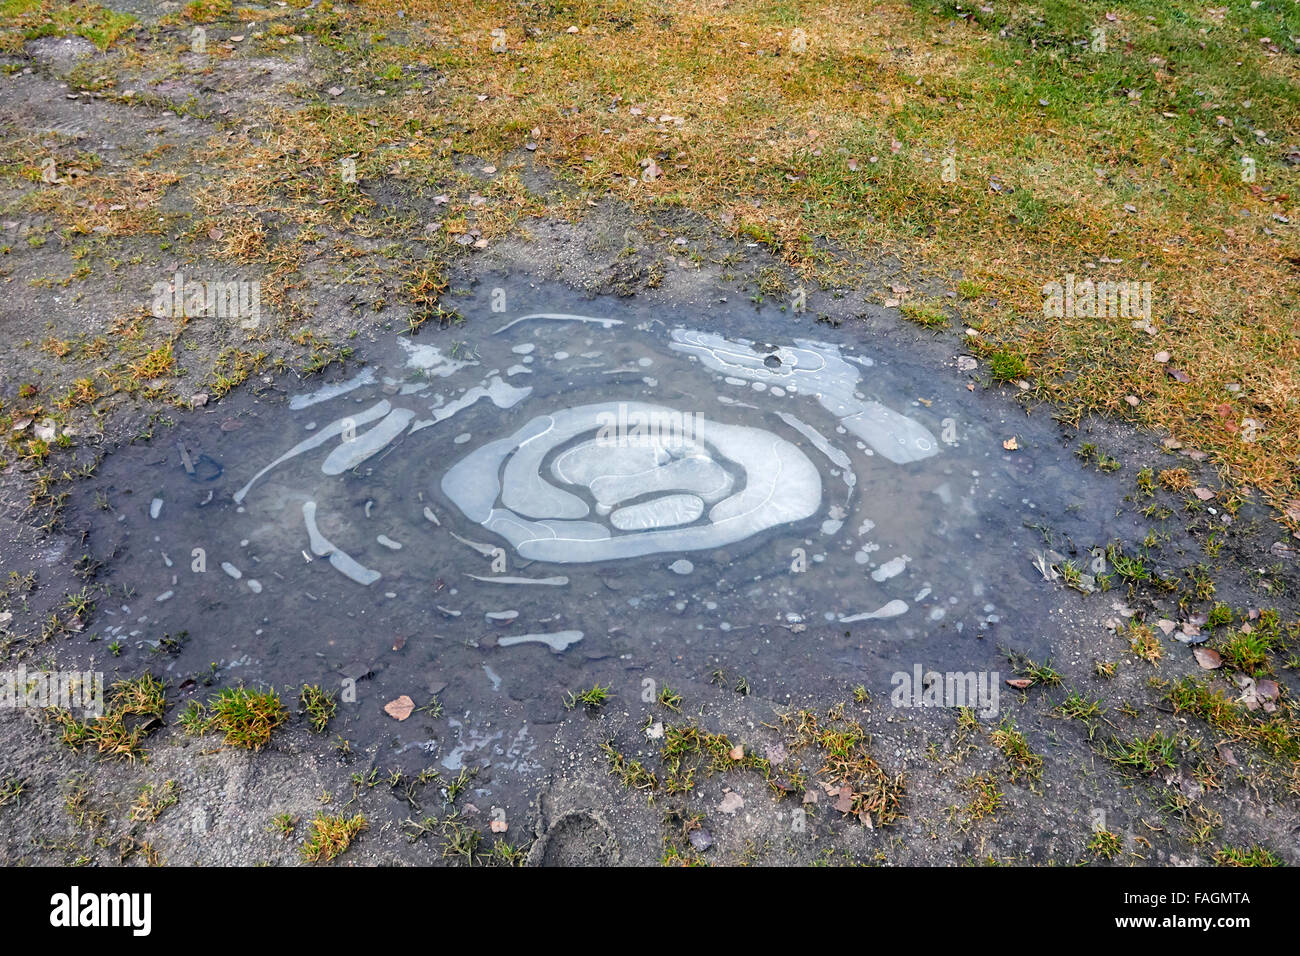 frozen puddle on ground - Stock Image